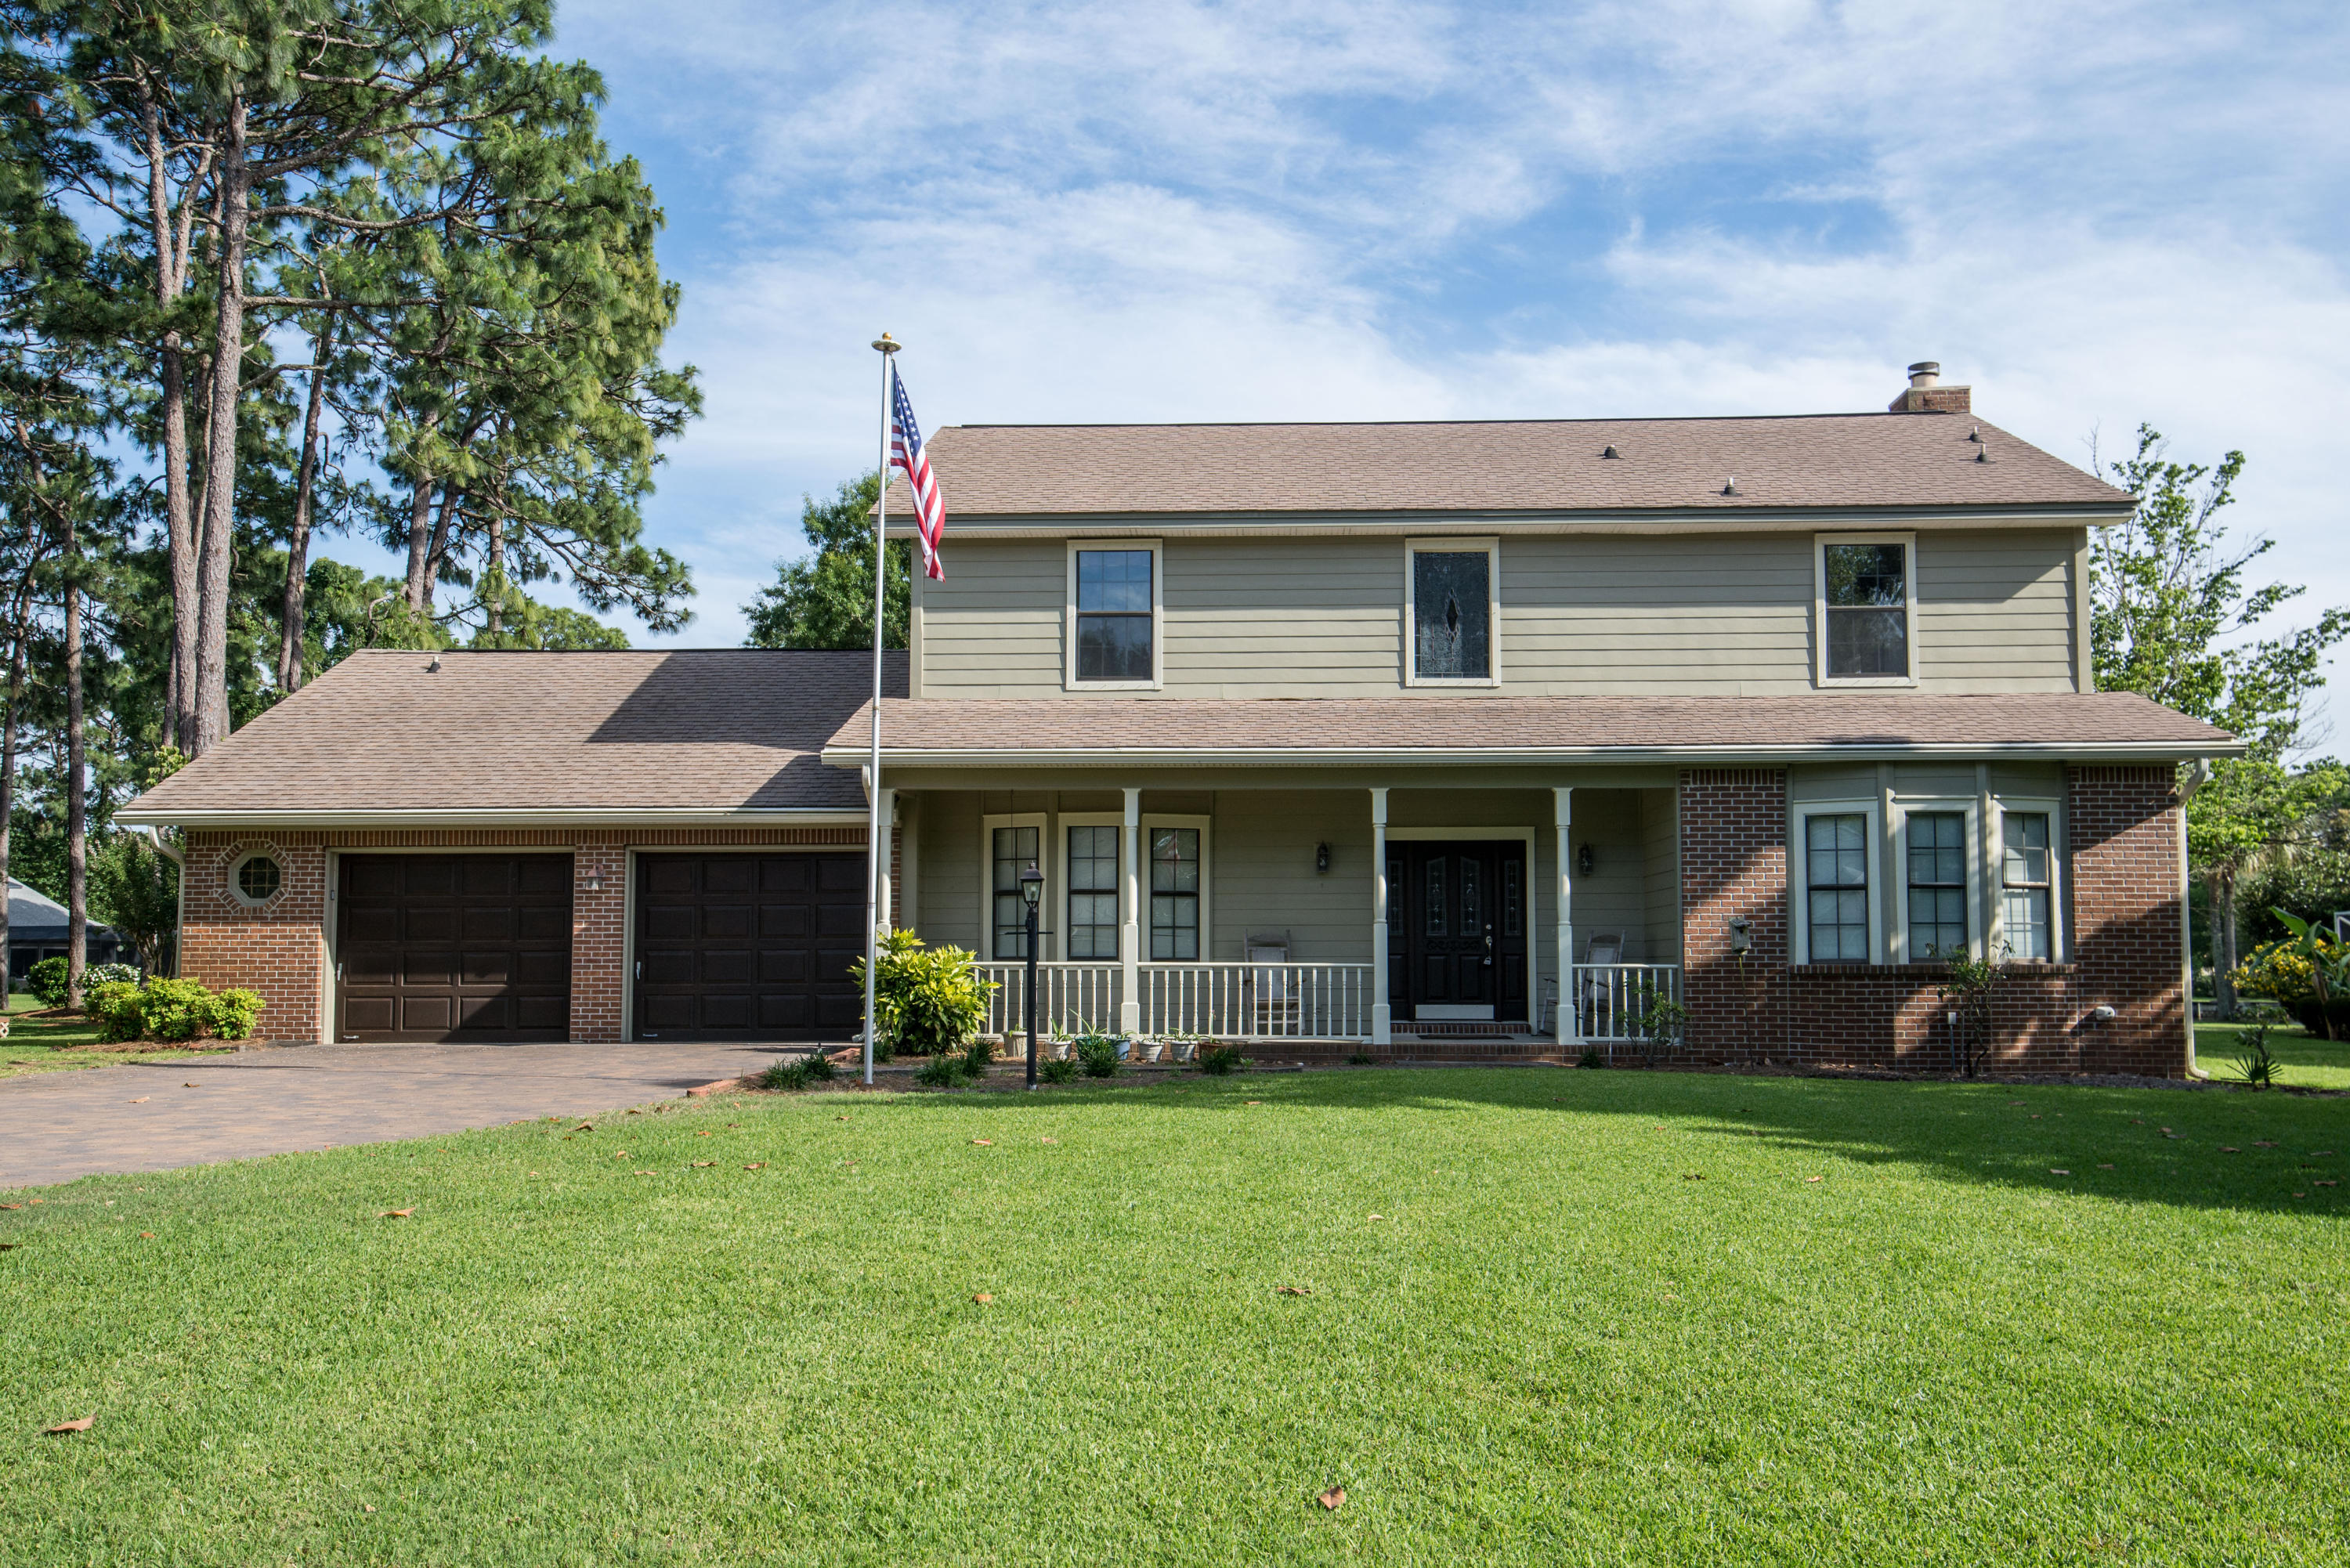 A 3 Bedroom 3 Bedroom Southwind Ph 2 Home